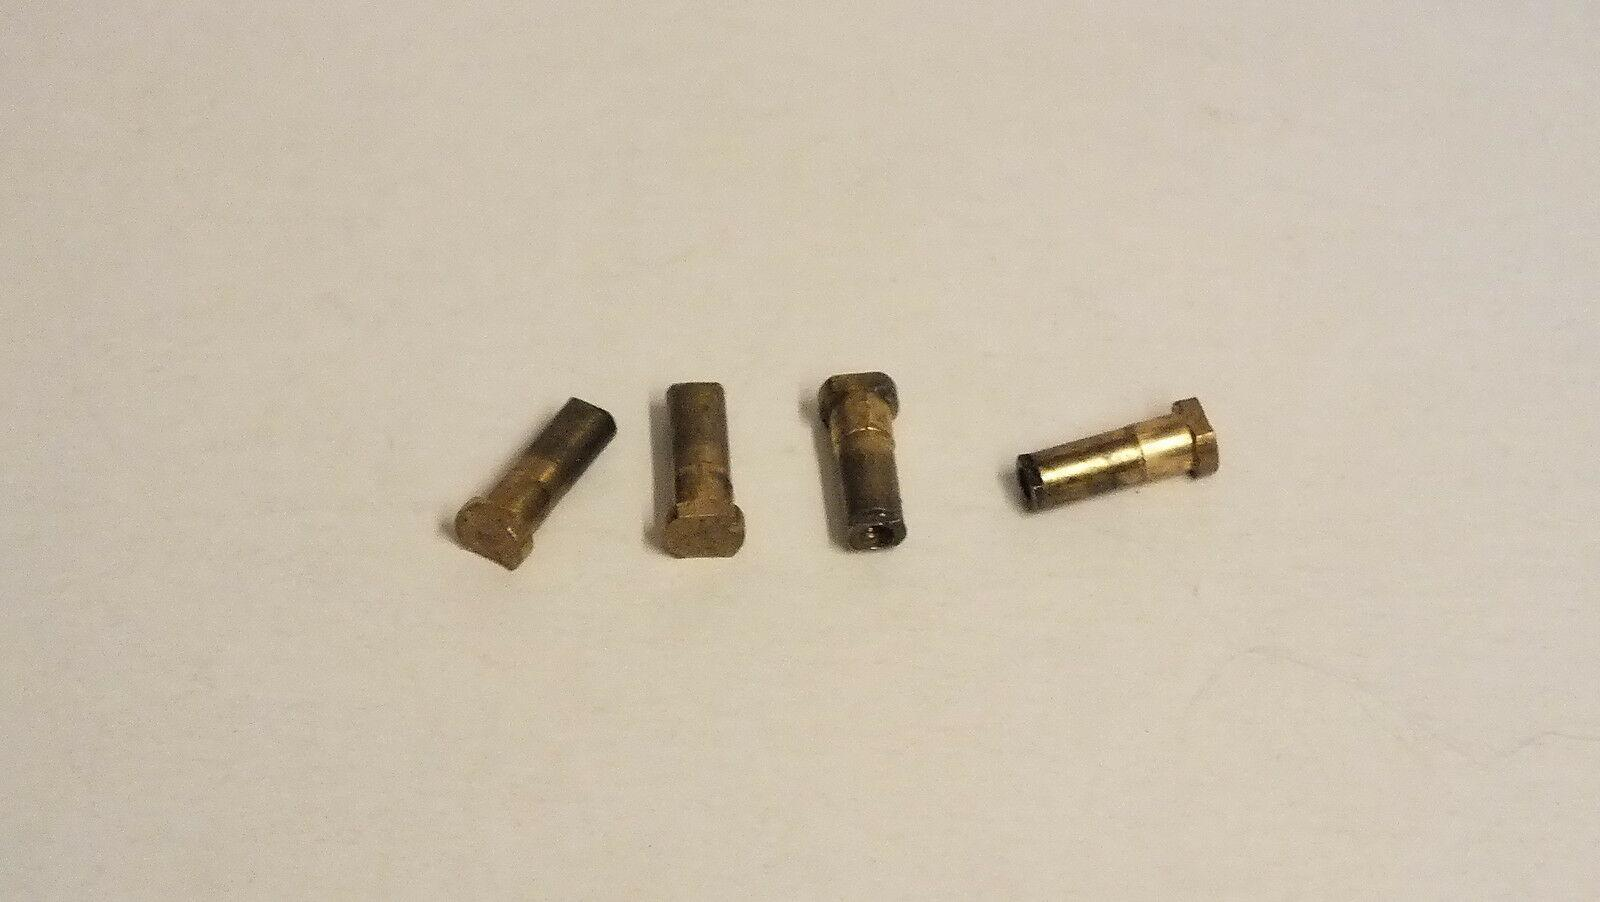 S2109S #  4 x  hornby triang spare parts long crank pins G12D